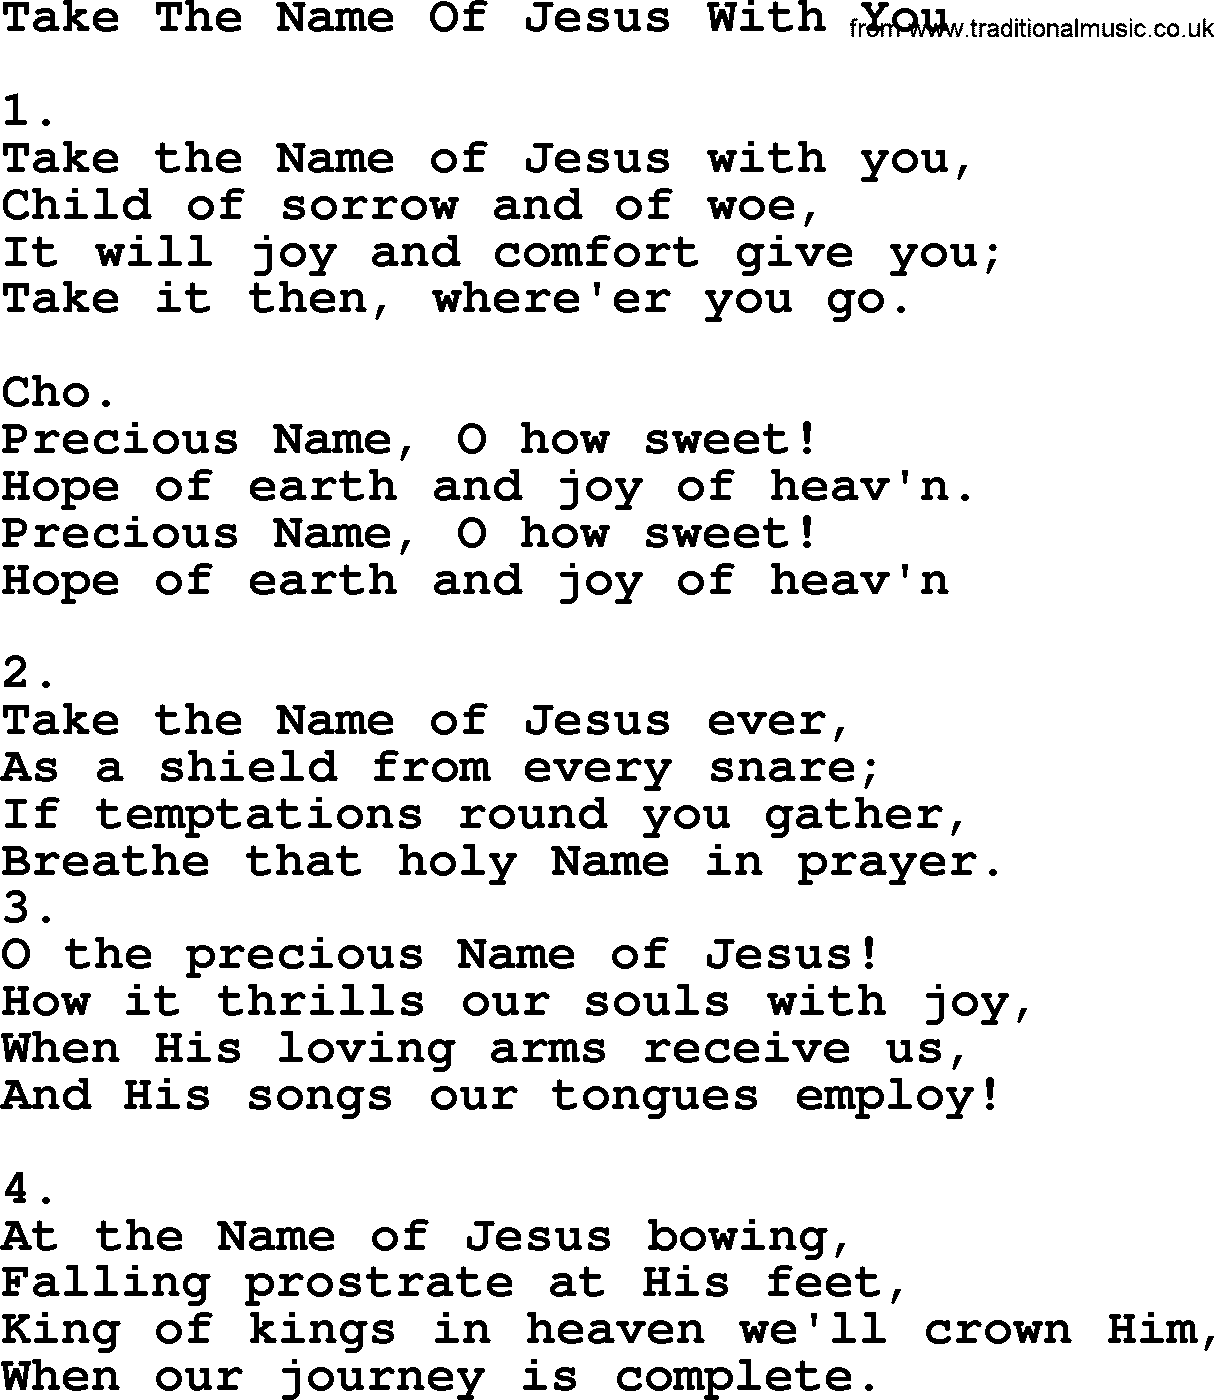 Take The Name Of Jesus With You - Apostolic and Pentecostal